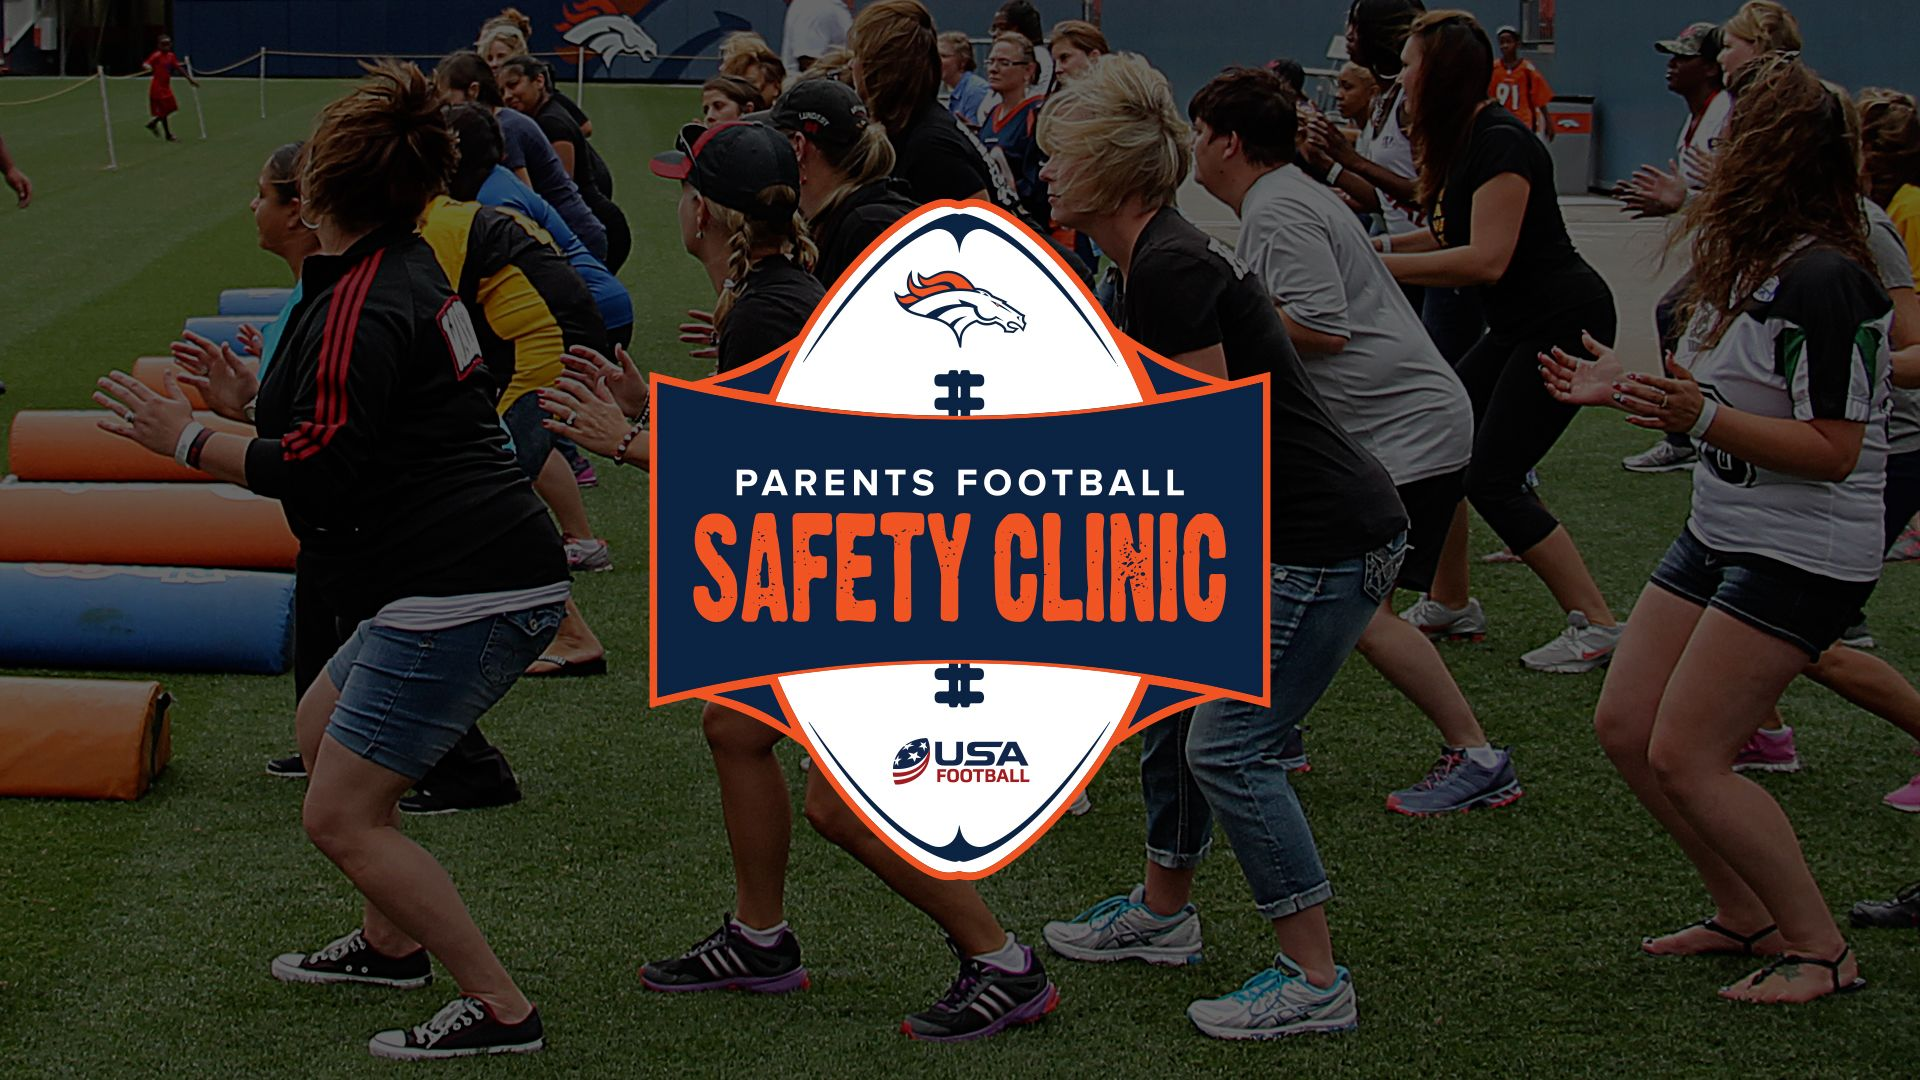 Parents Football Safety Clinic